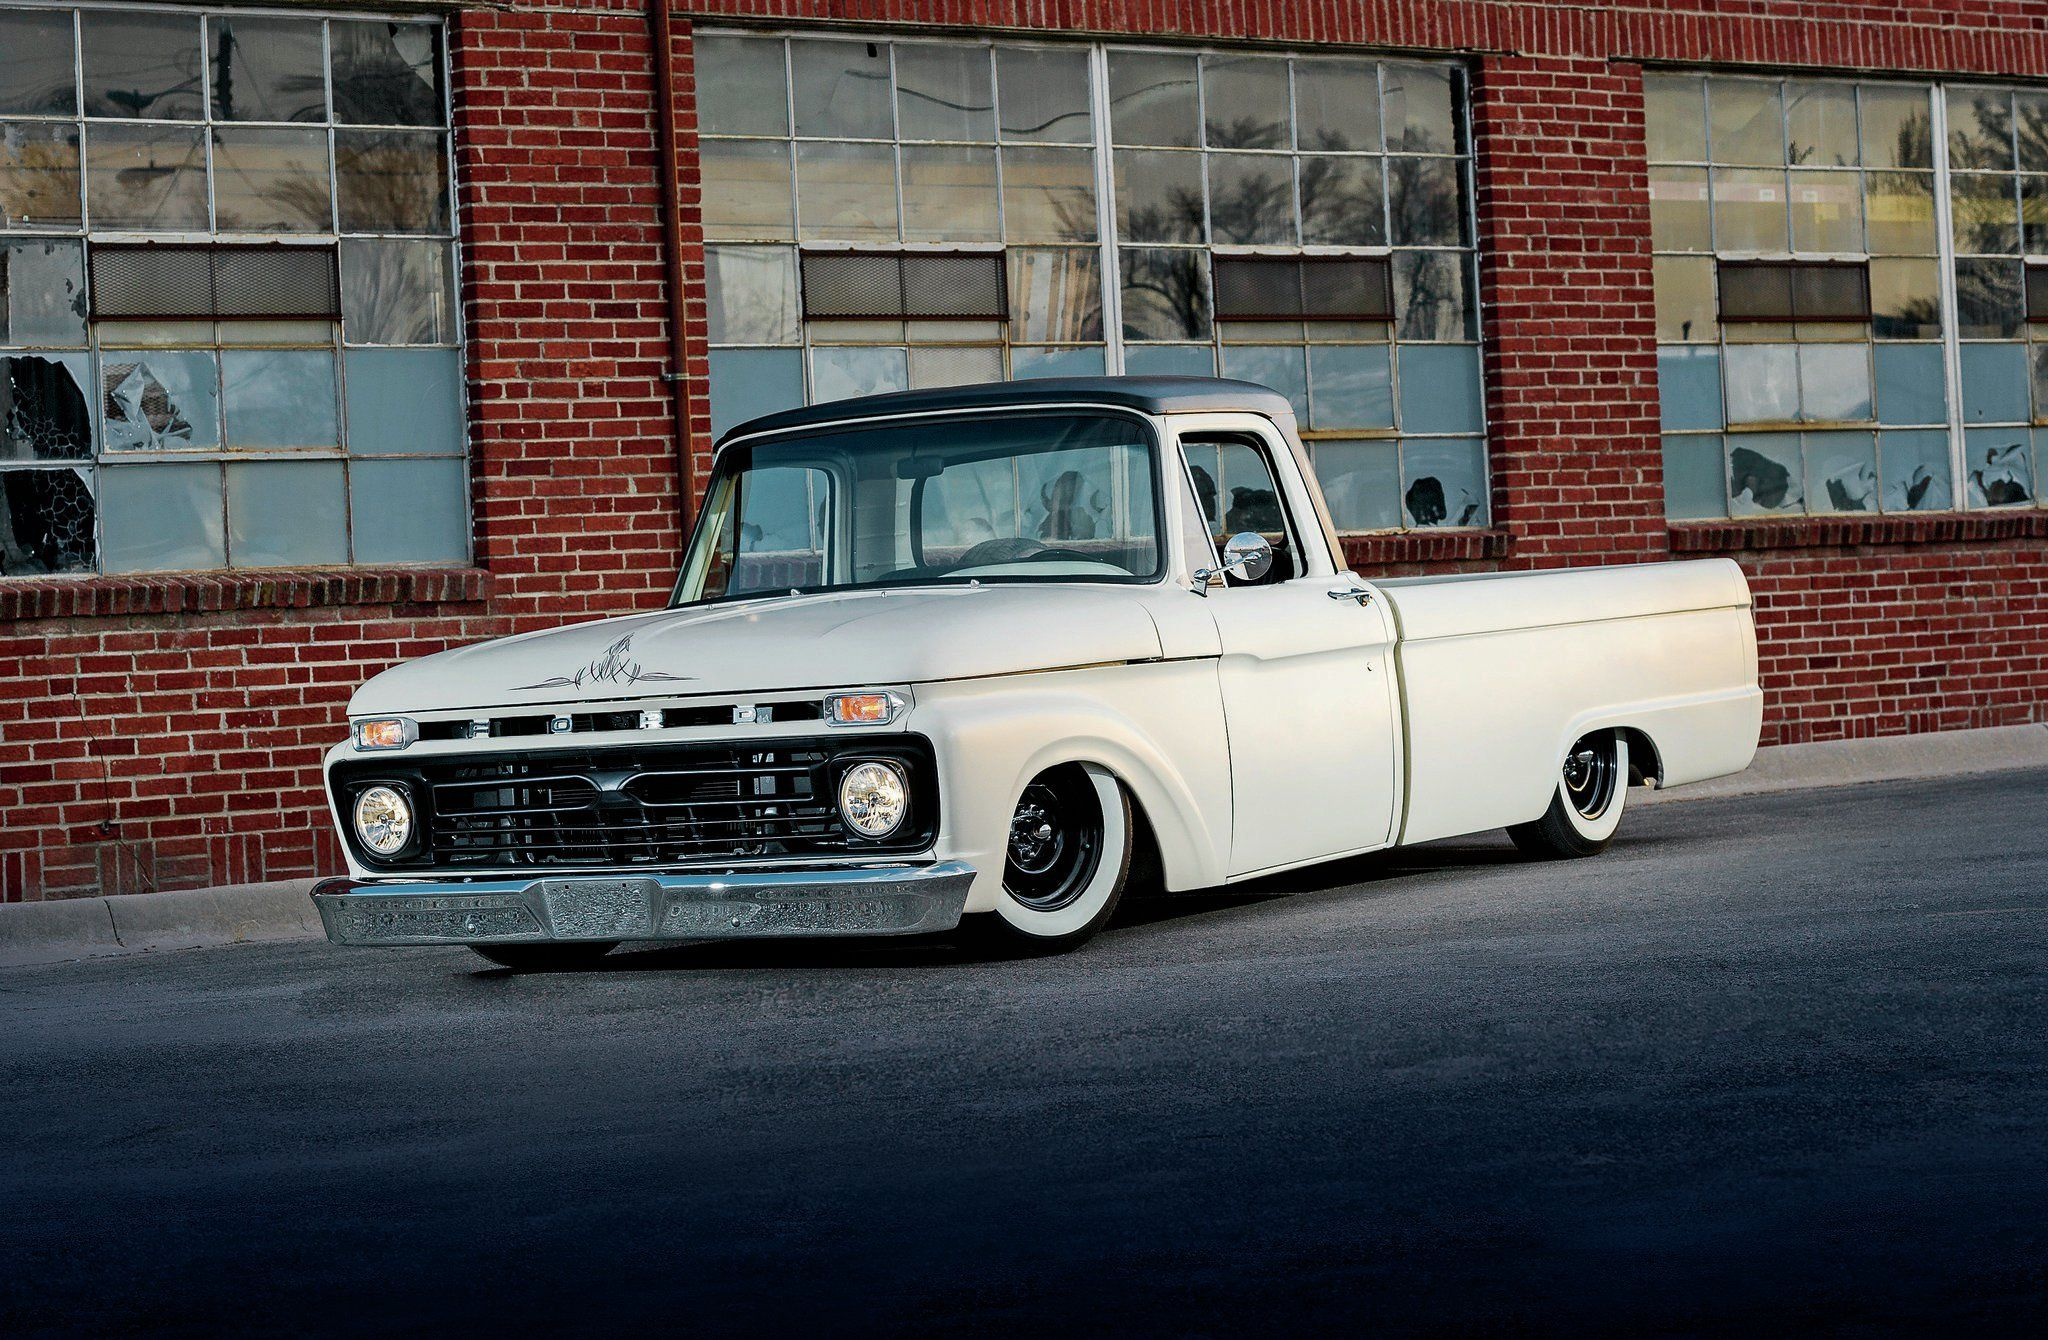 Ford f-100 1966 photo - 8